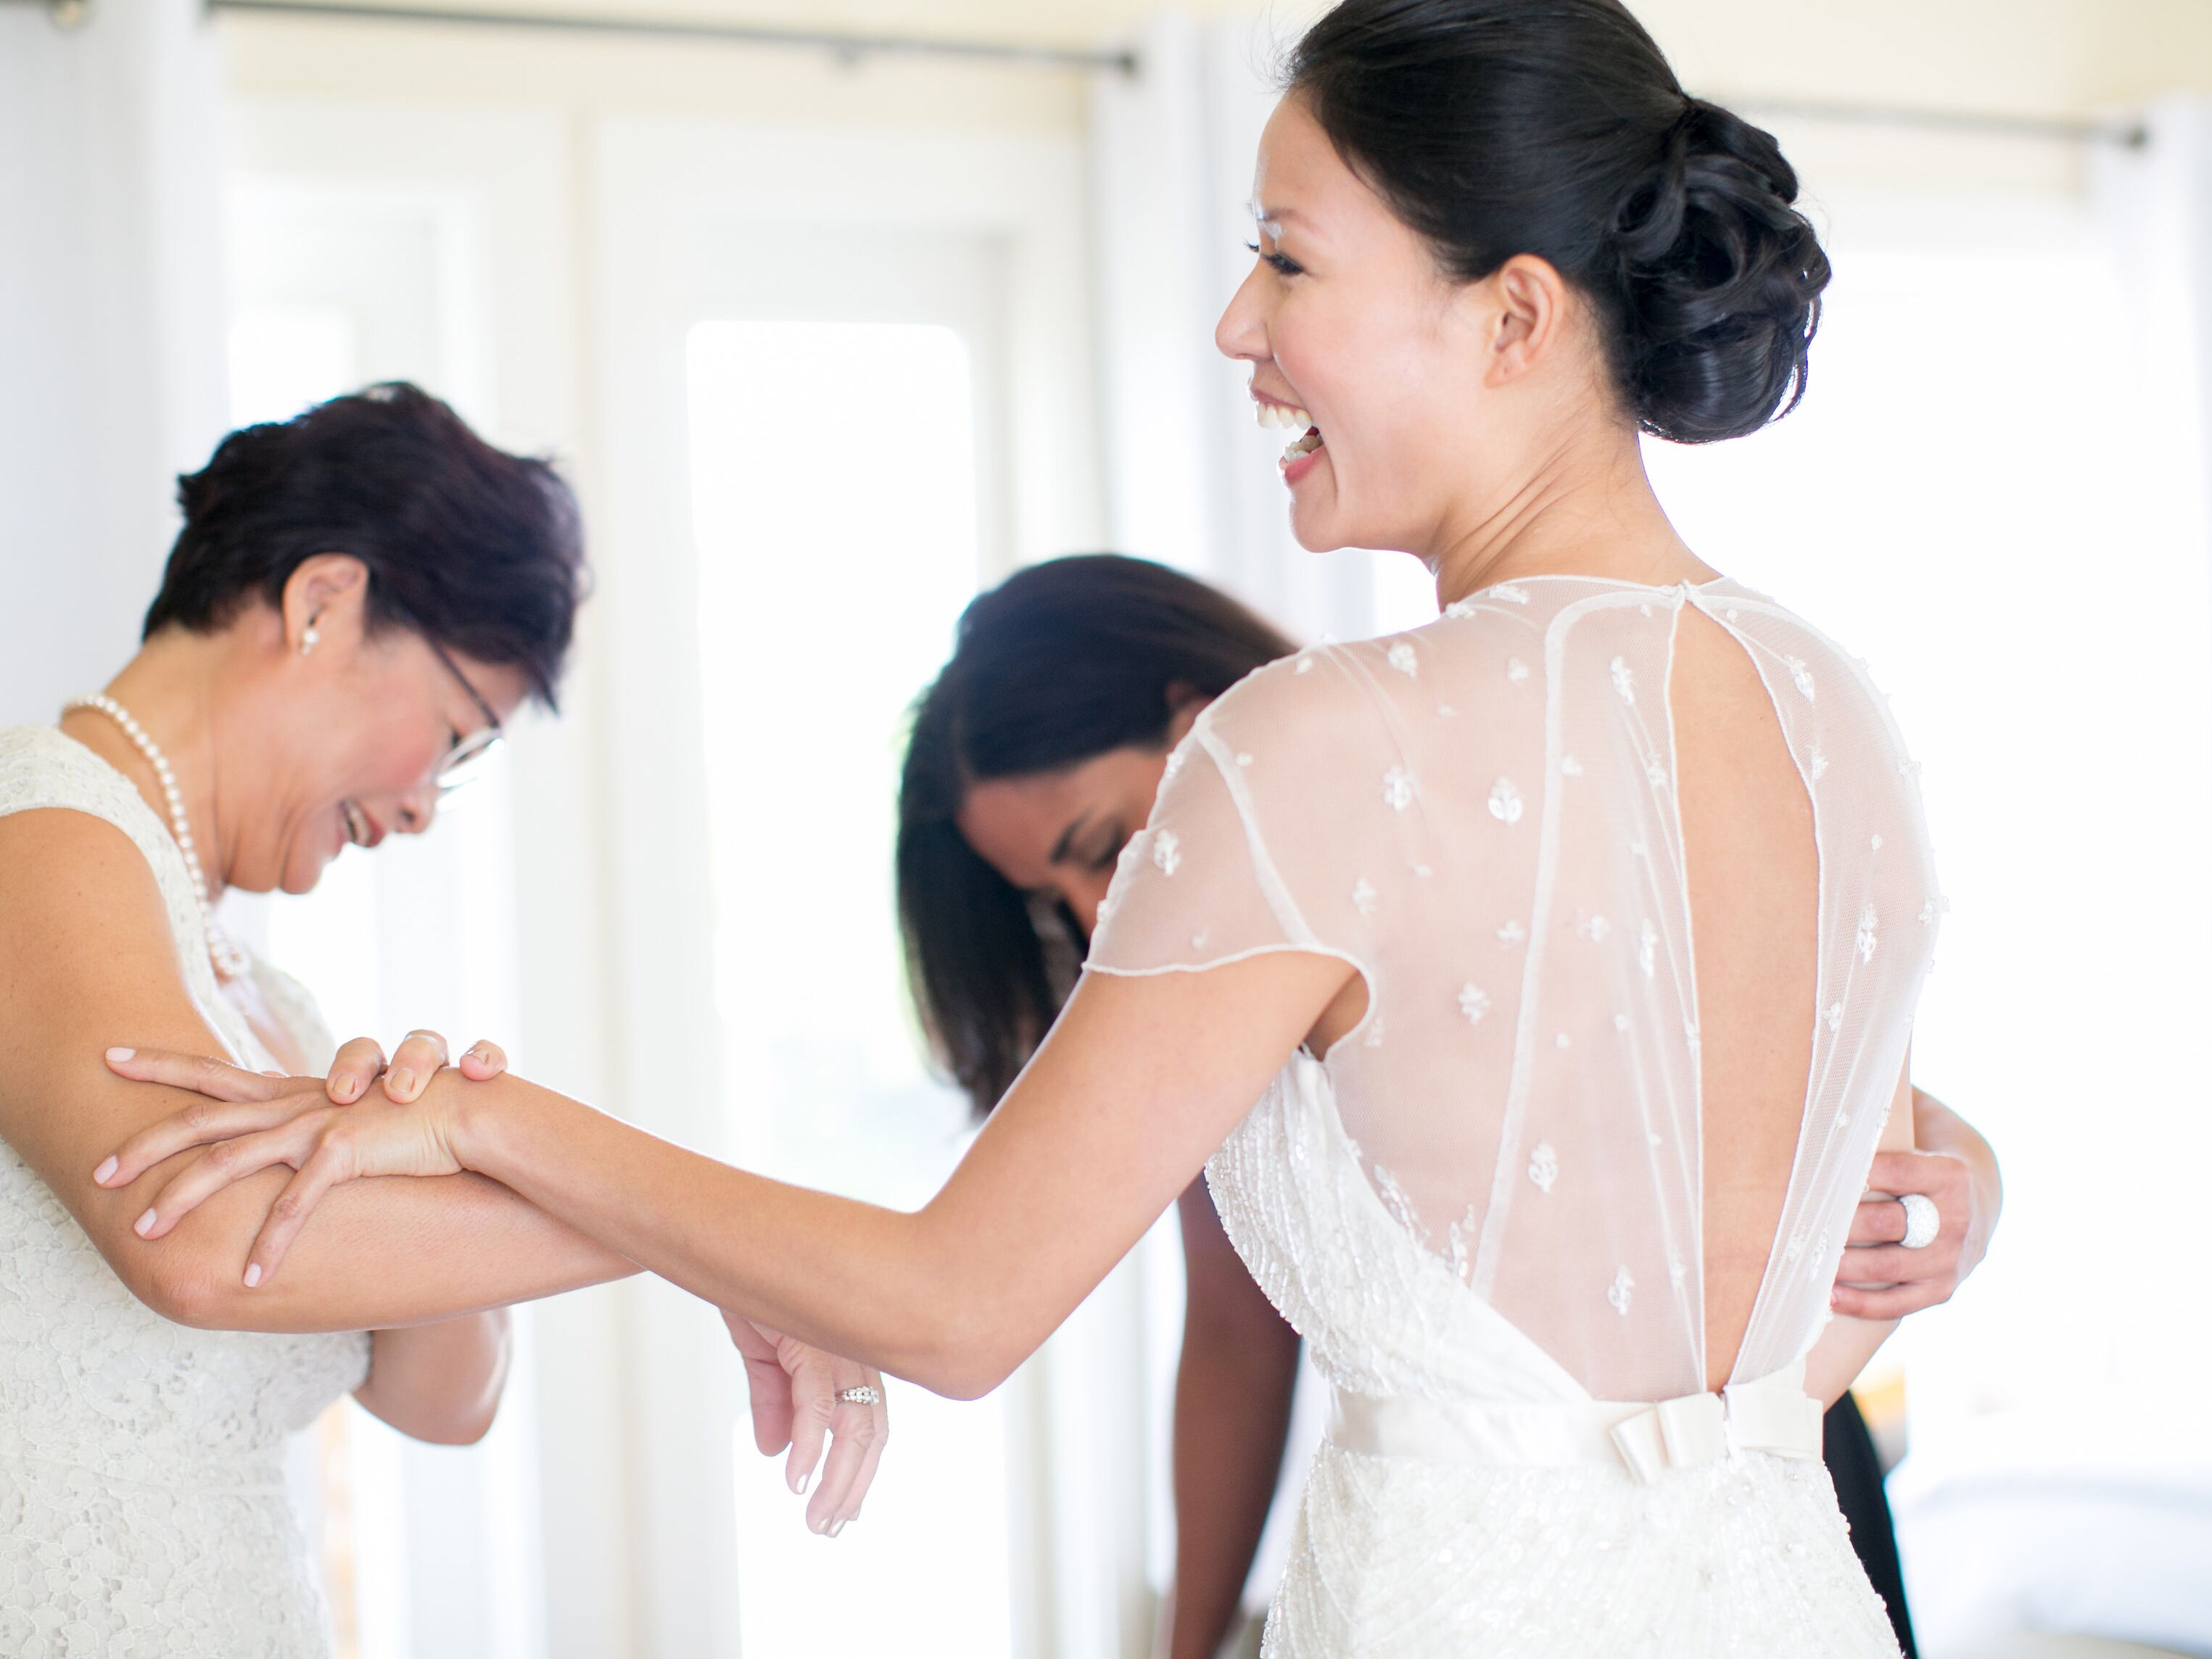 Bridal Salons   The Knot